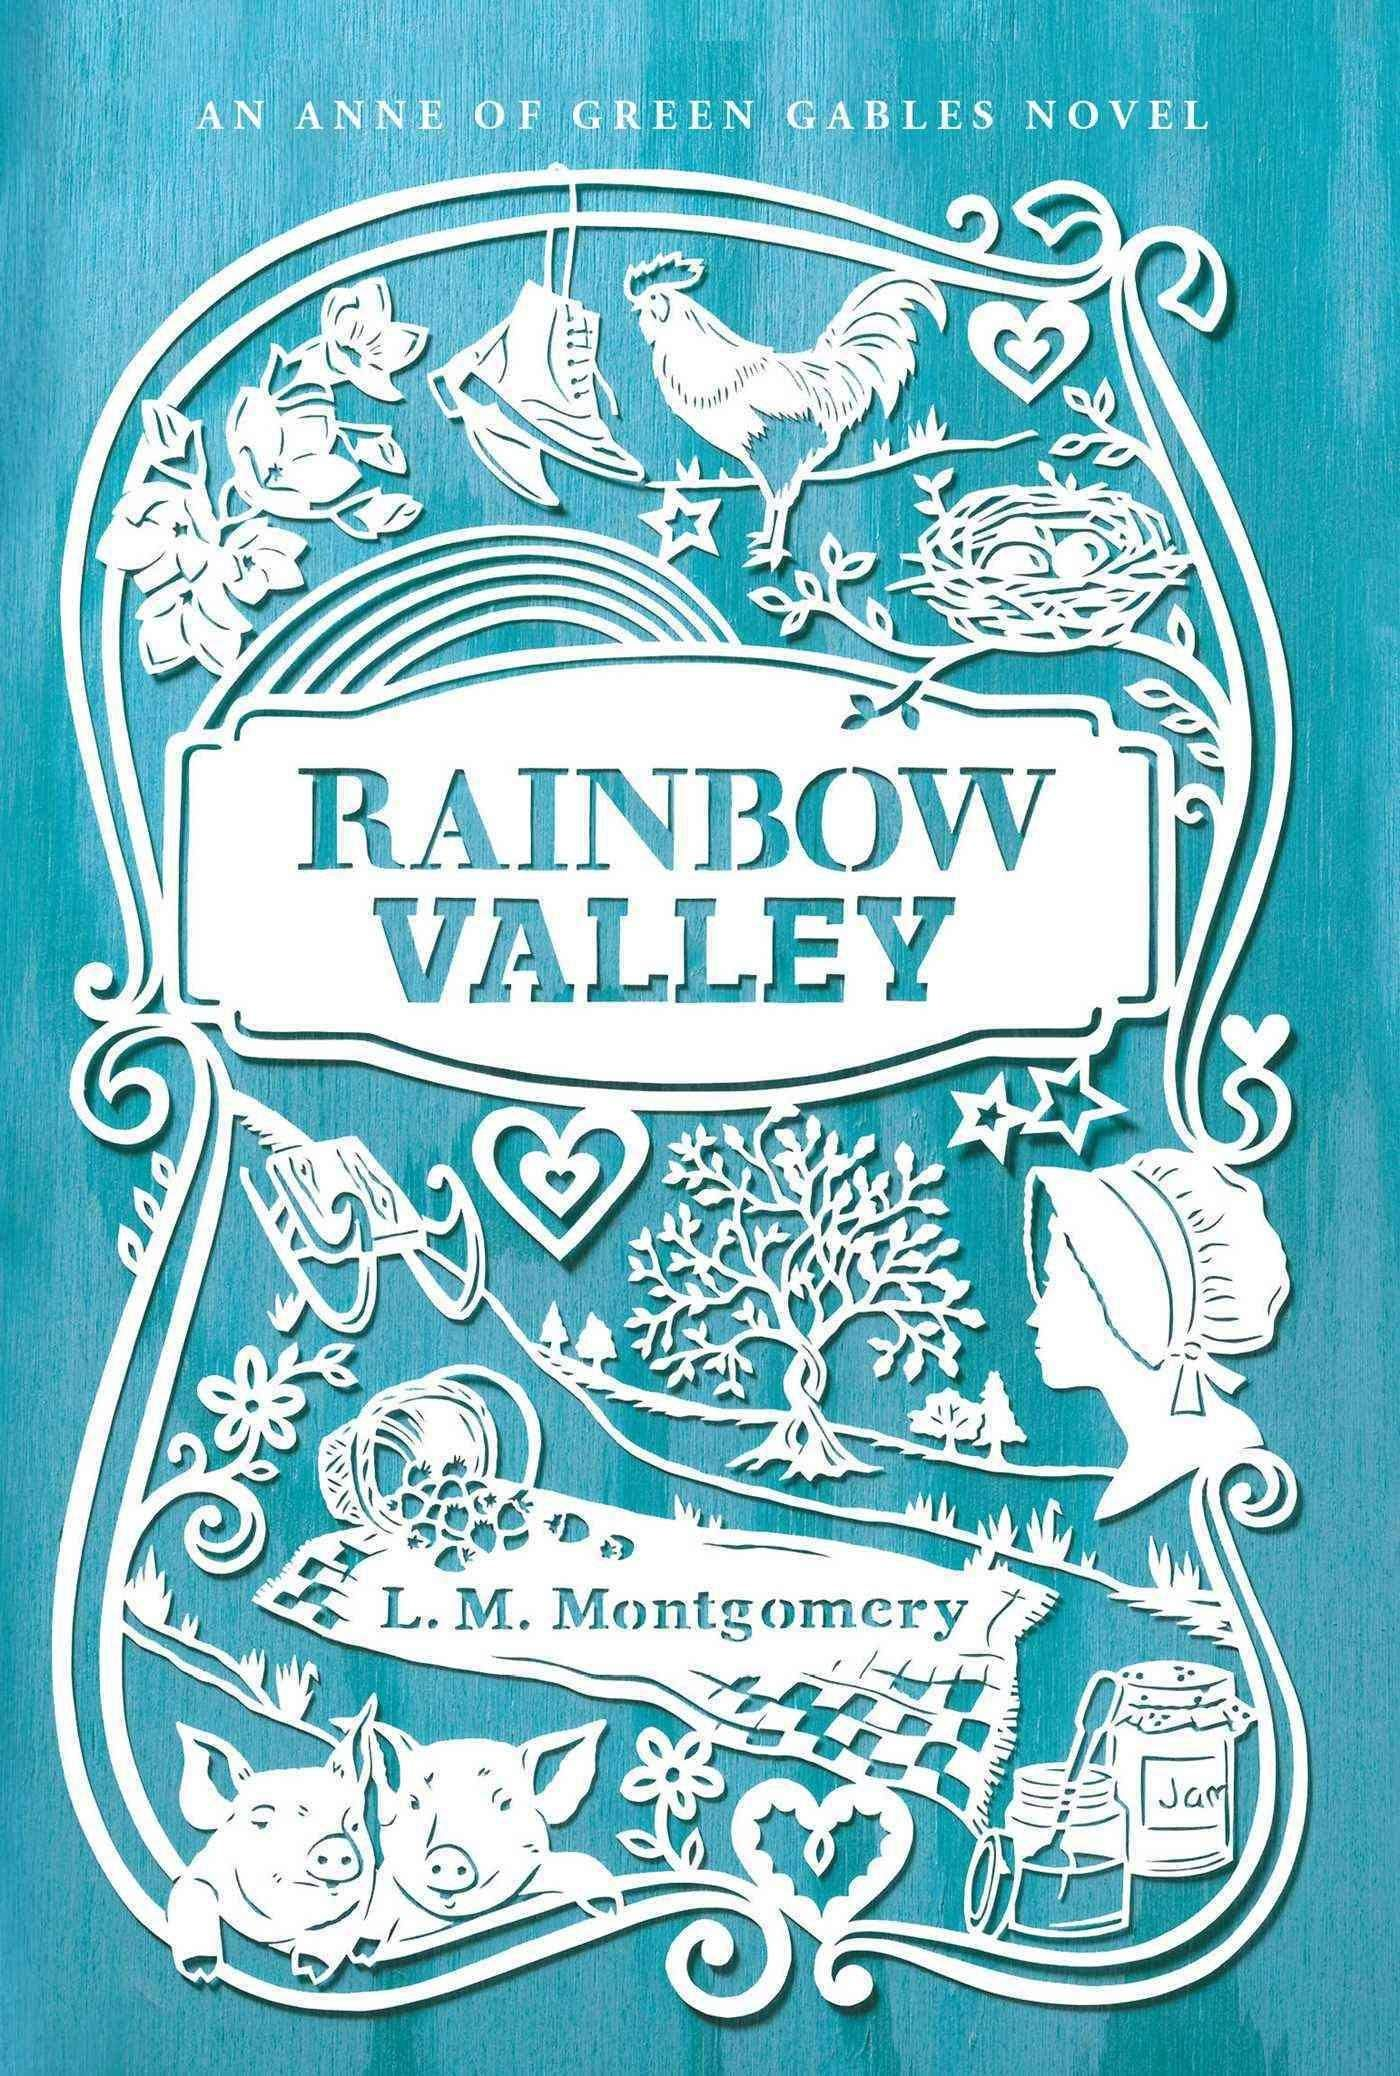 Rainbow Valley In 2020 Anne Of Green Gables Anne Of Green Green Gables